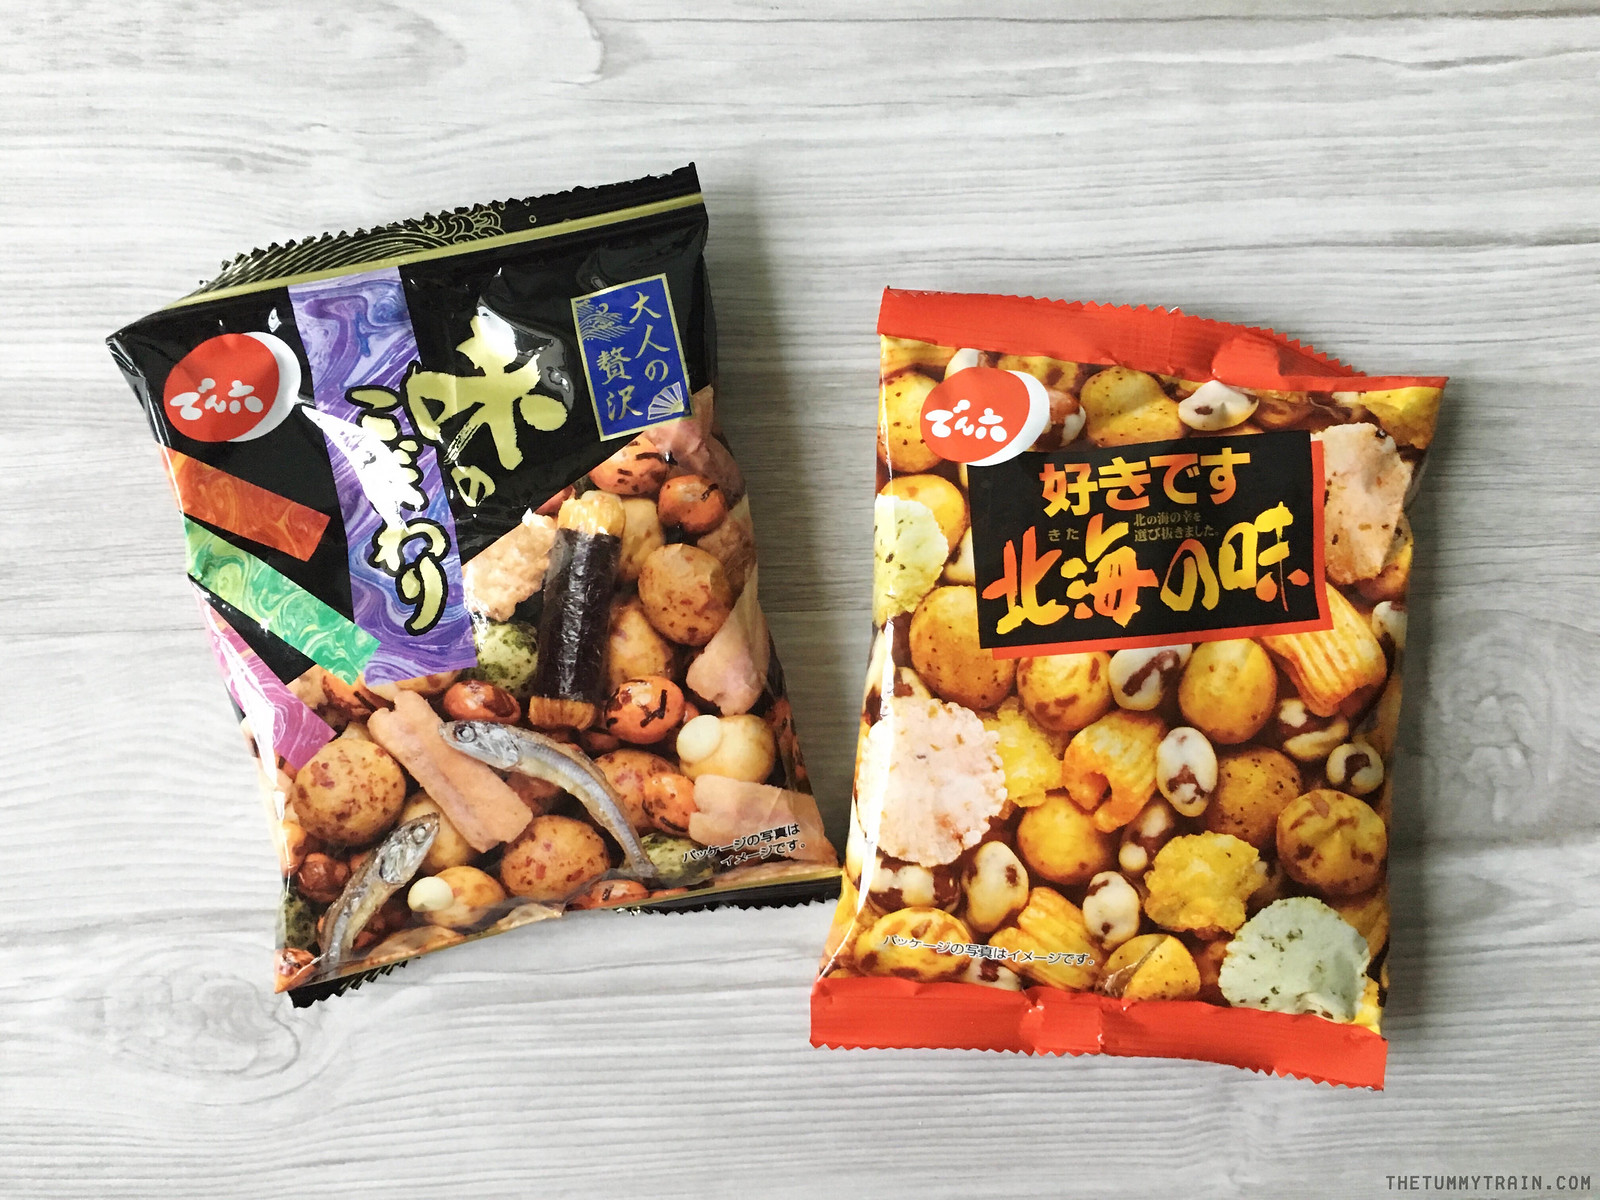 32785785880 fb53e0981b h - February 2017 Japanese Snack Haul from Sapporo [Vol. 3]